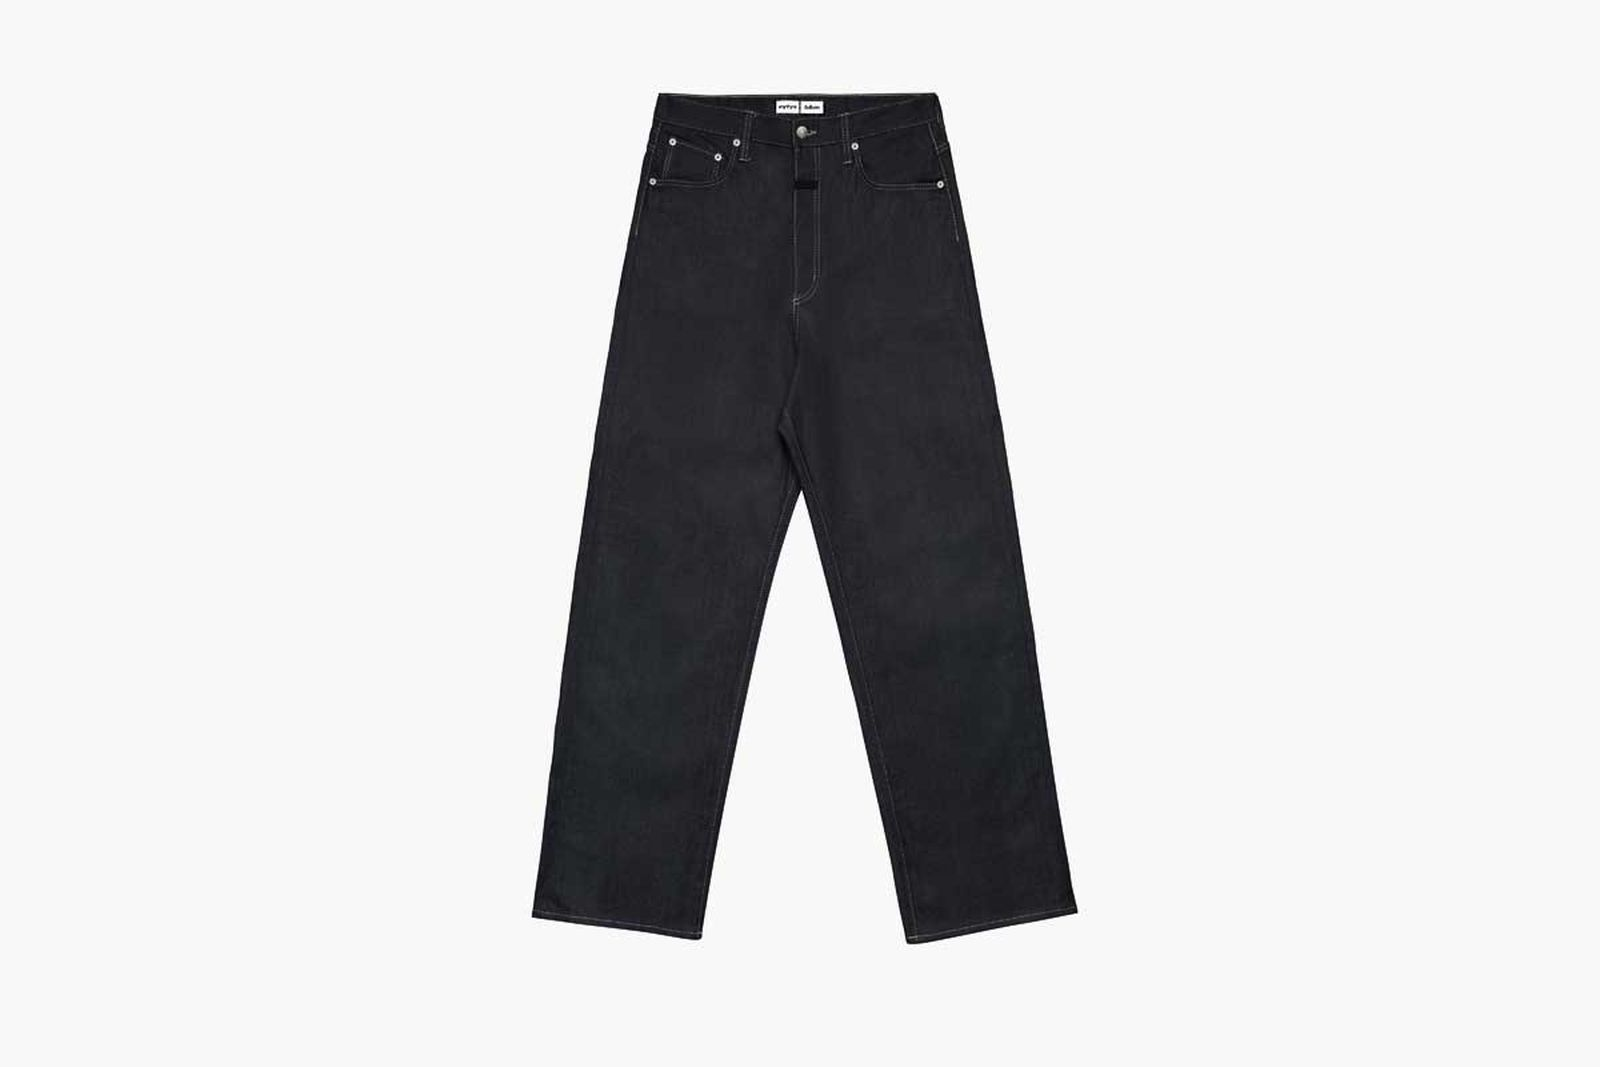 hm x eytys release date price h&m